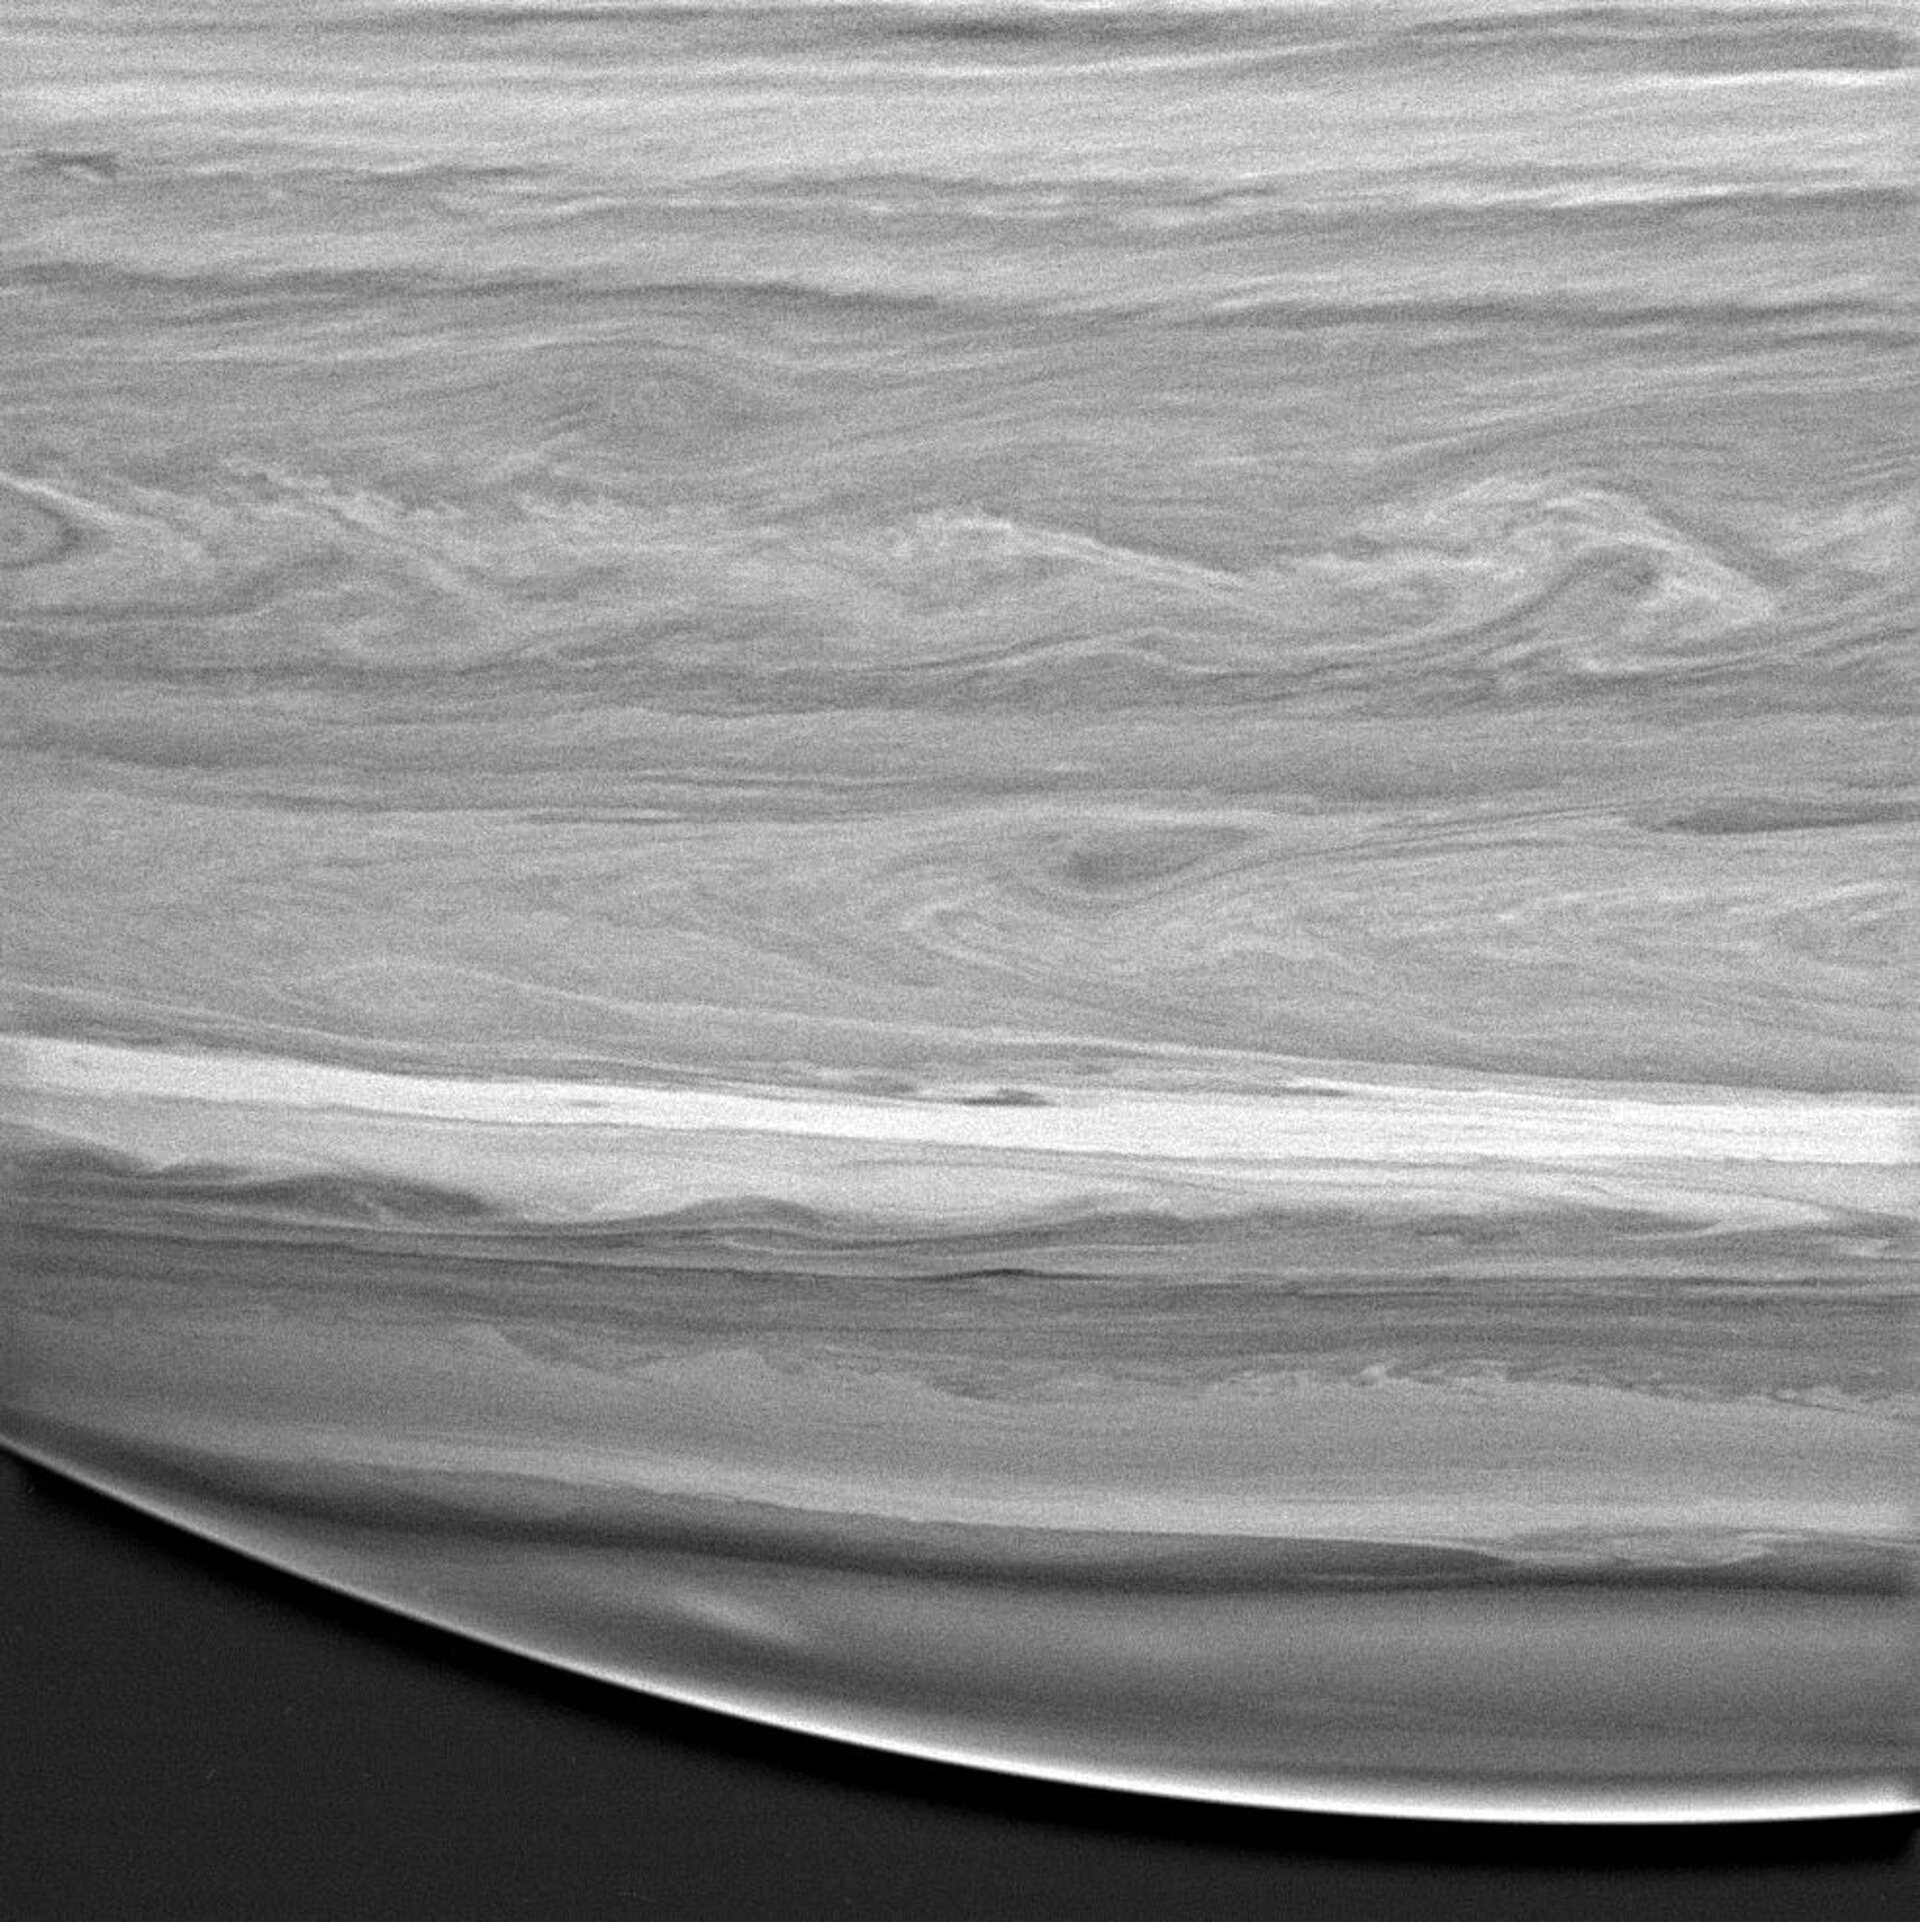 Wavelike patterns in the cloud bands of Saturn's atmosphere